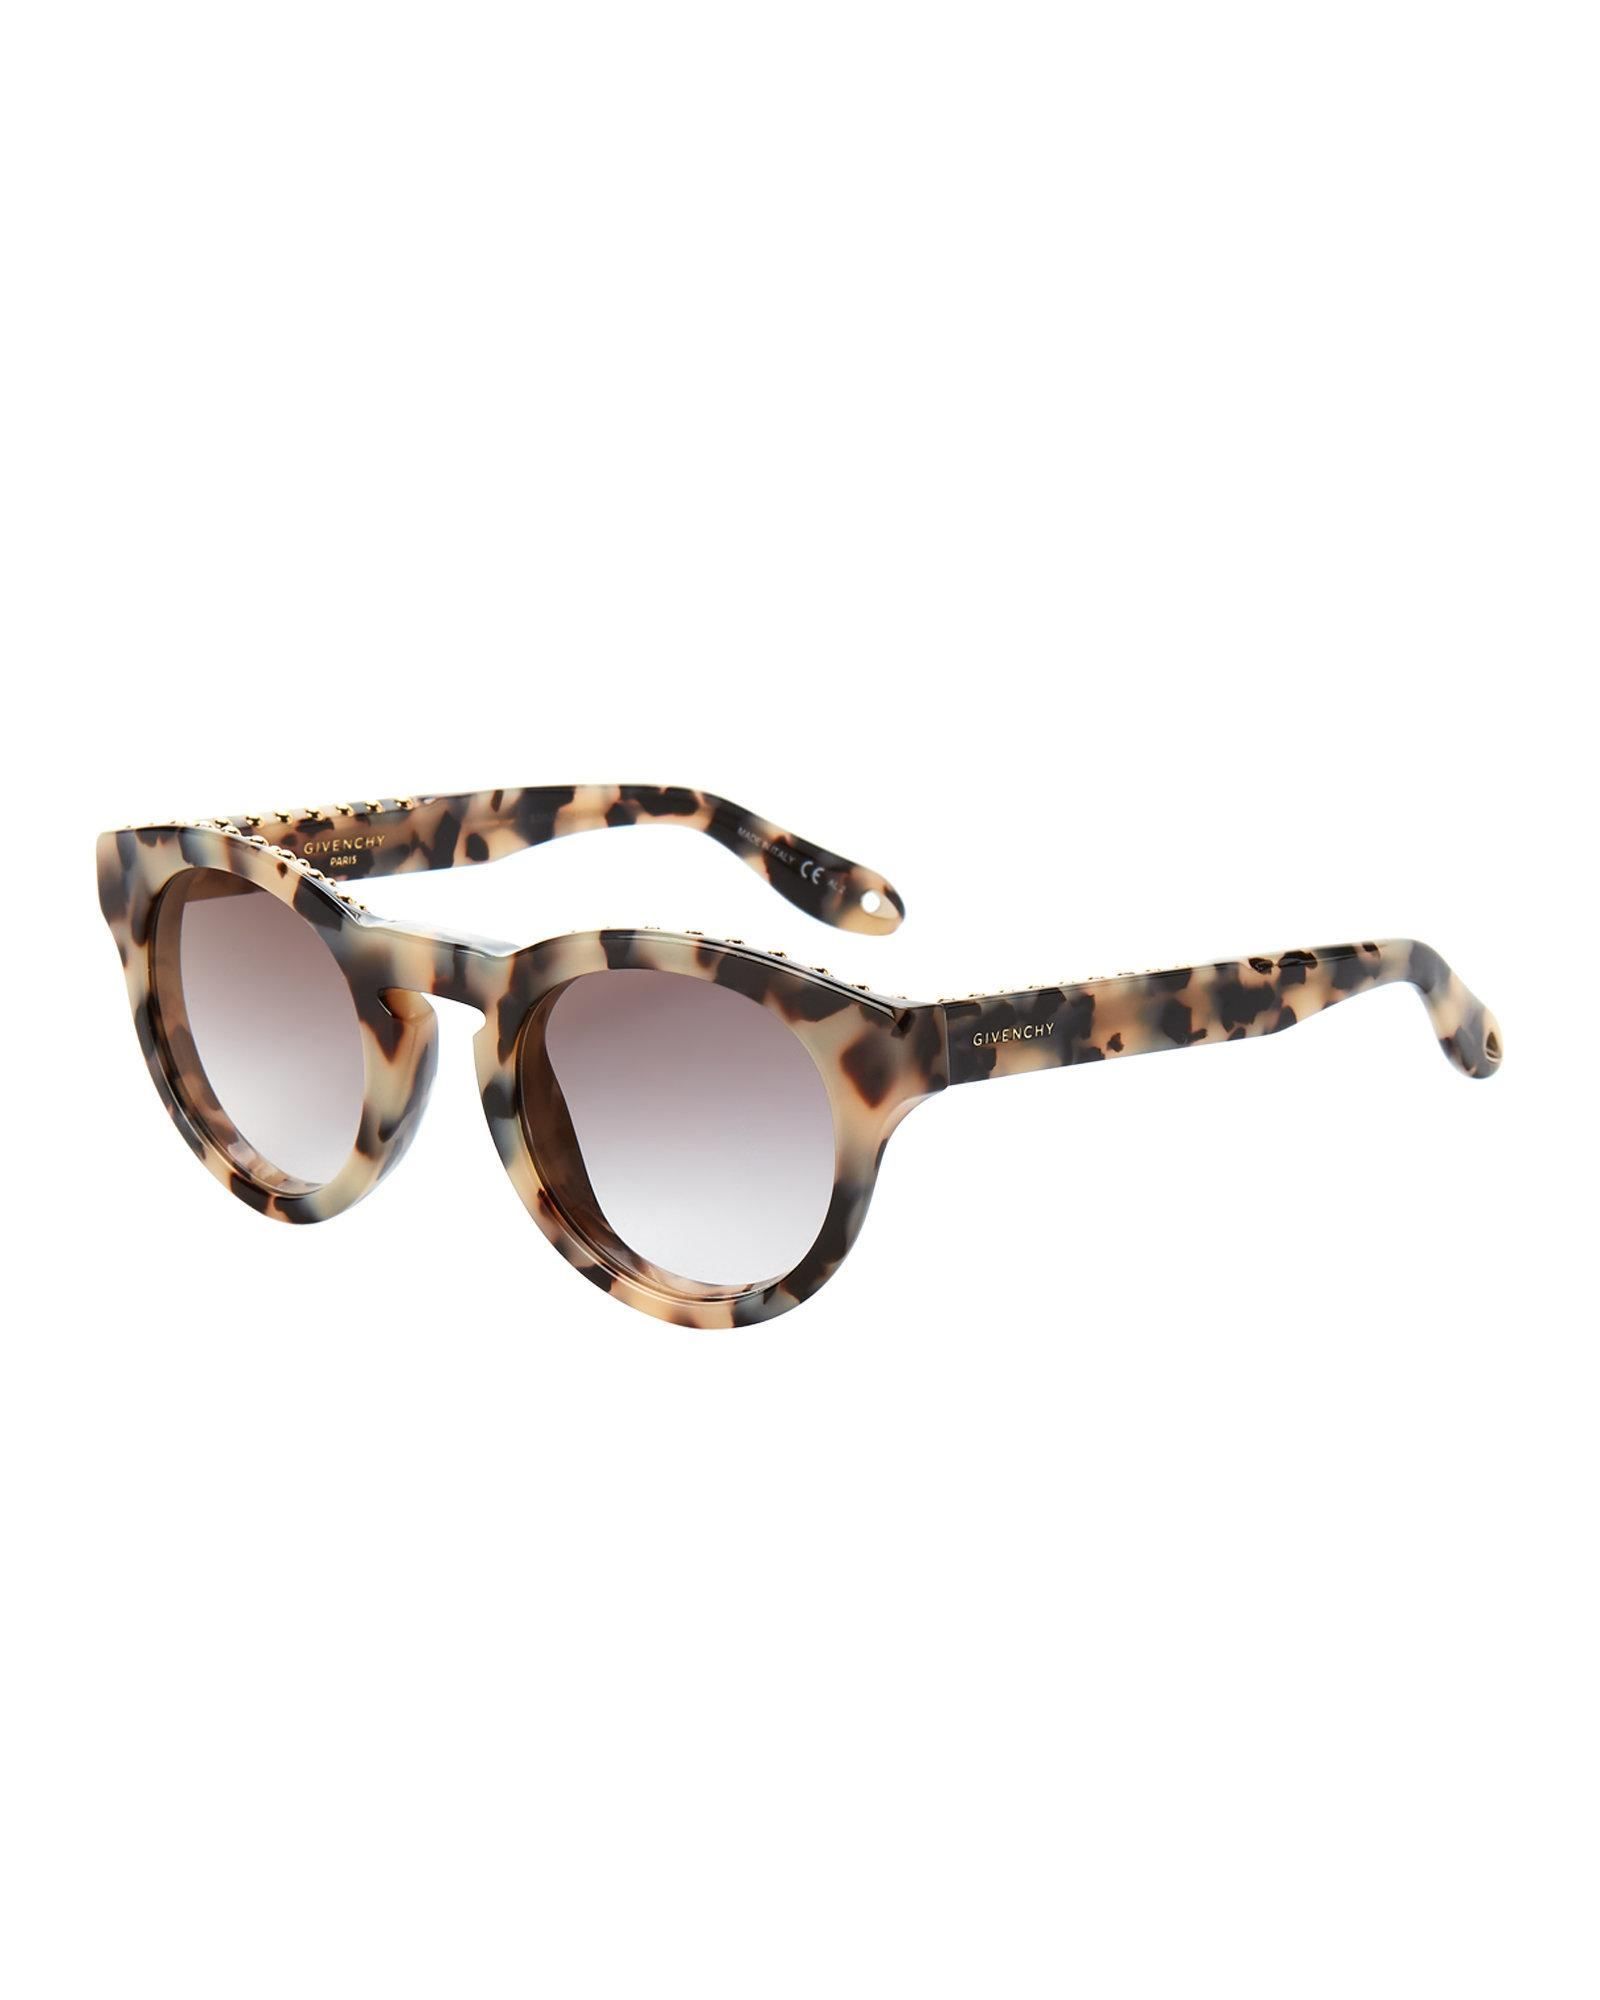 d948975a3 Givenchy Gv 7007/s Smoke Havana Round Sunglasses in Brown - Lyst